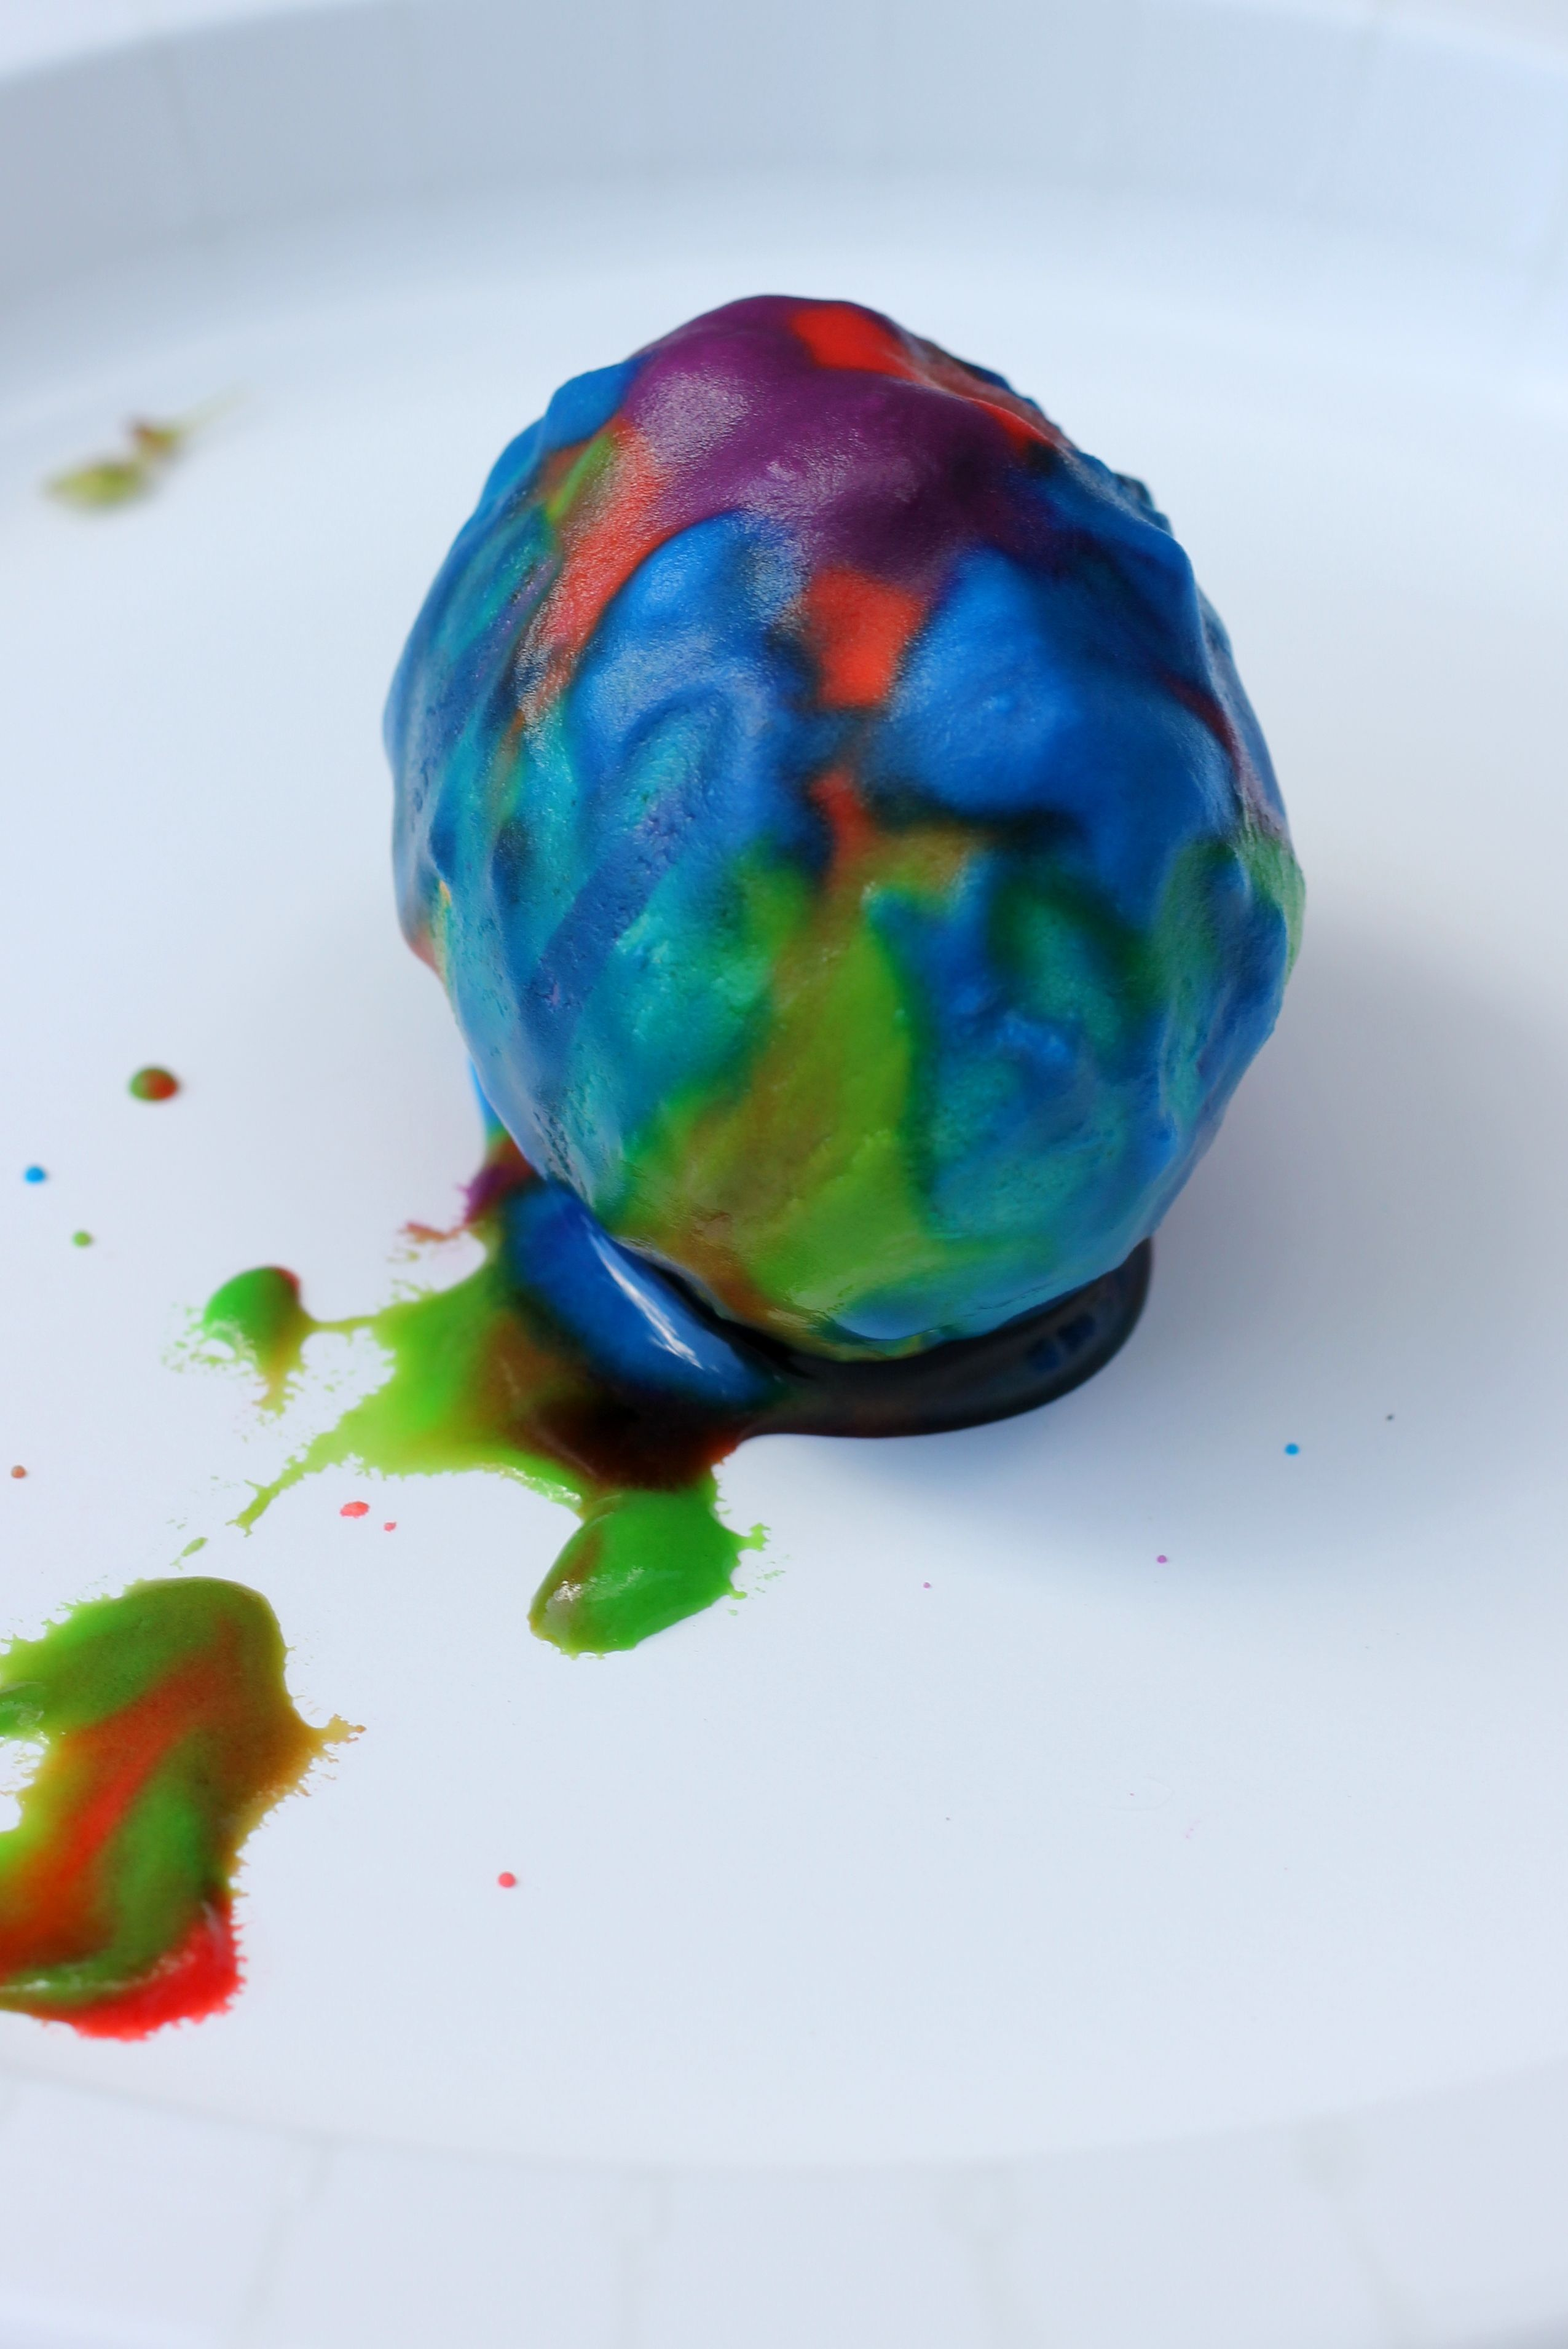 Egg Coloring Kit: Volcano Easter Eggs: Baking Soda, Vinegar, And Leftover